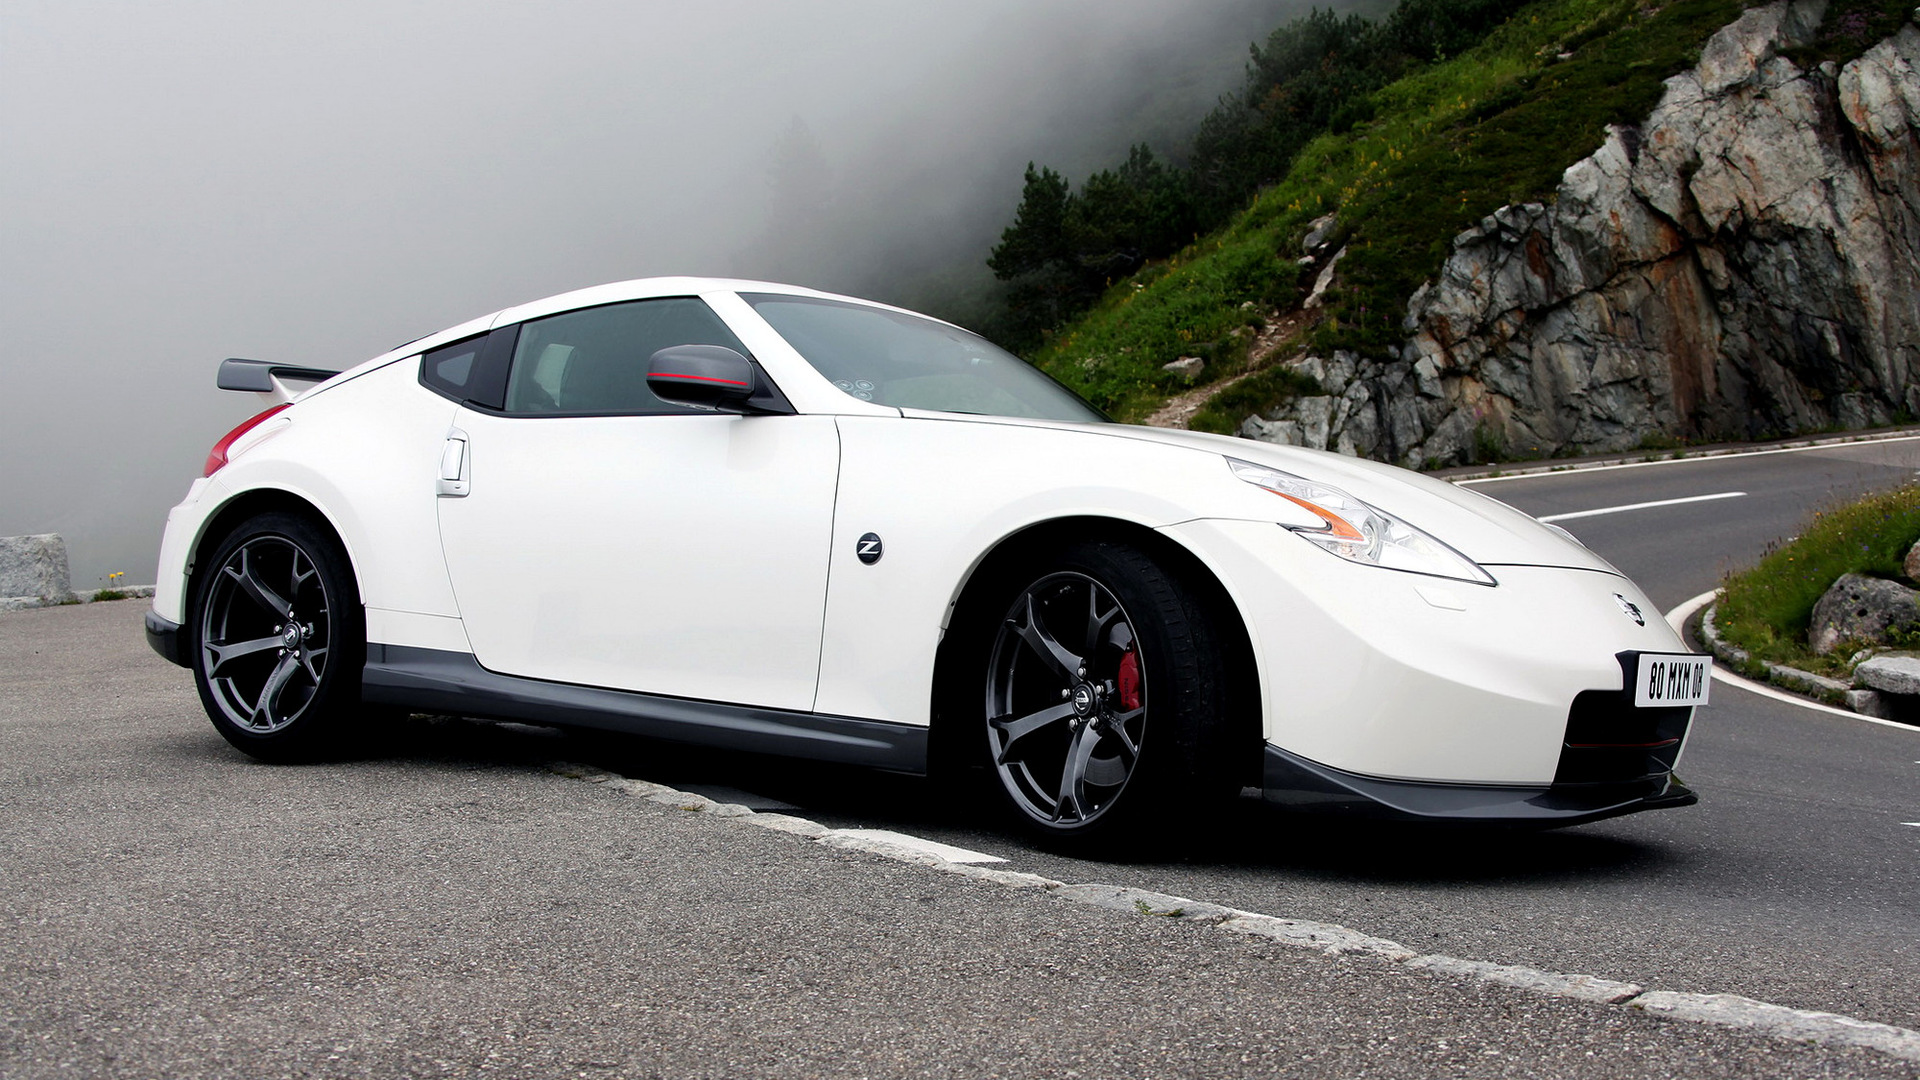 Nissan 370z nismo 2013 wallpapers and hd images car pixel nissan 370z nismo 2013 thumbnail 8412 8412 hd 169 vanachro Choice Image